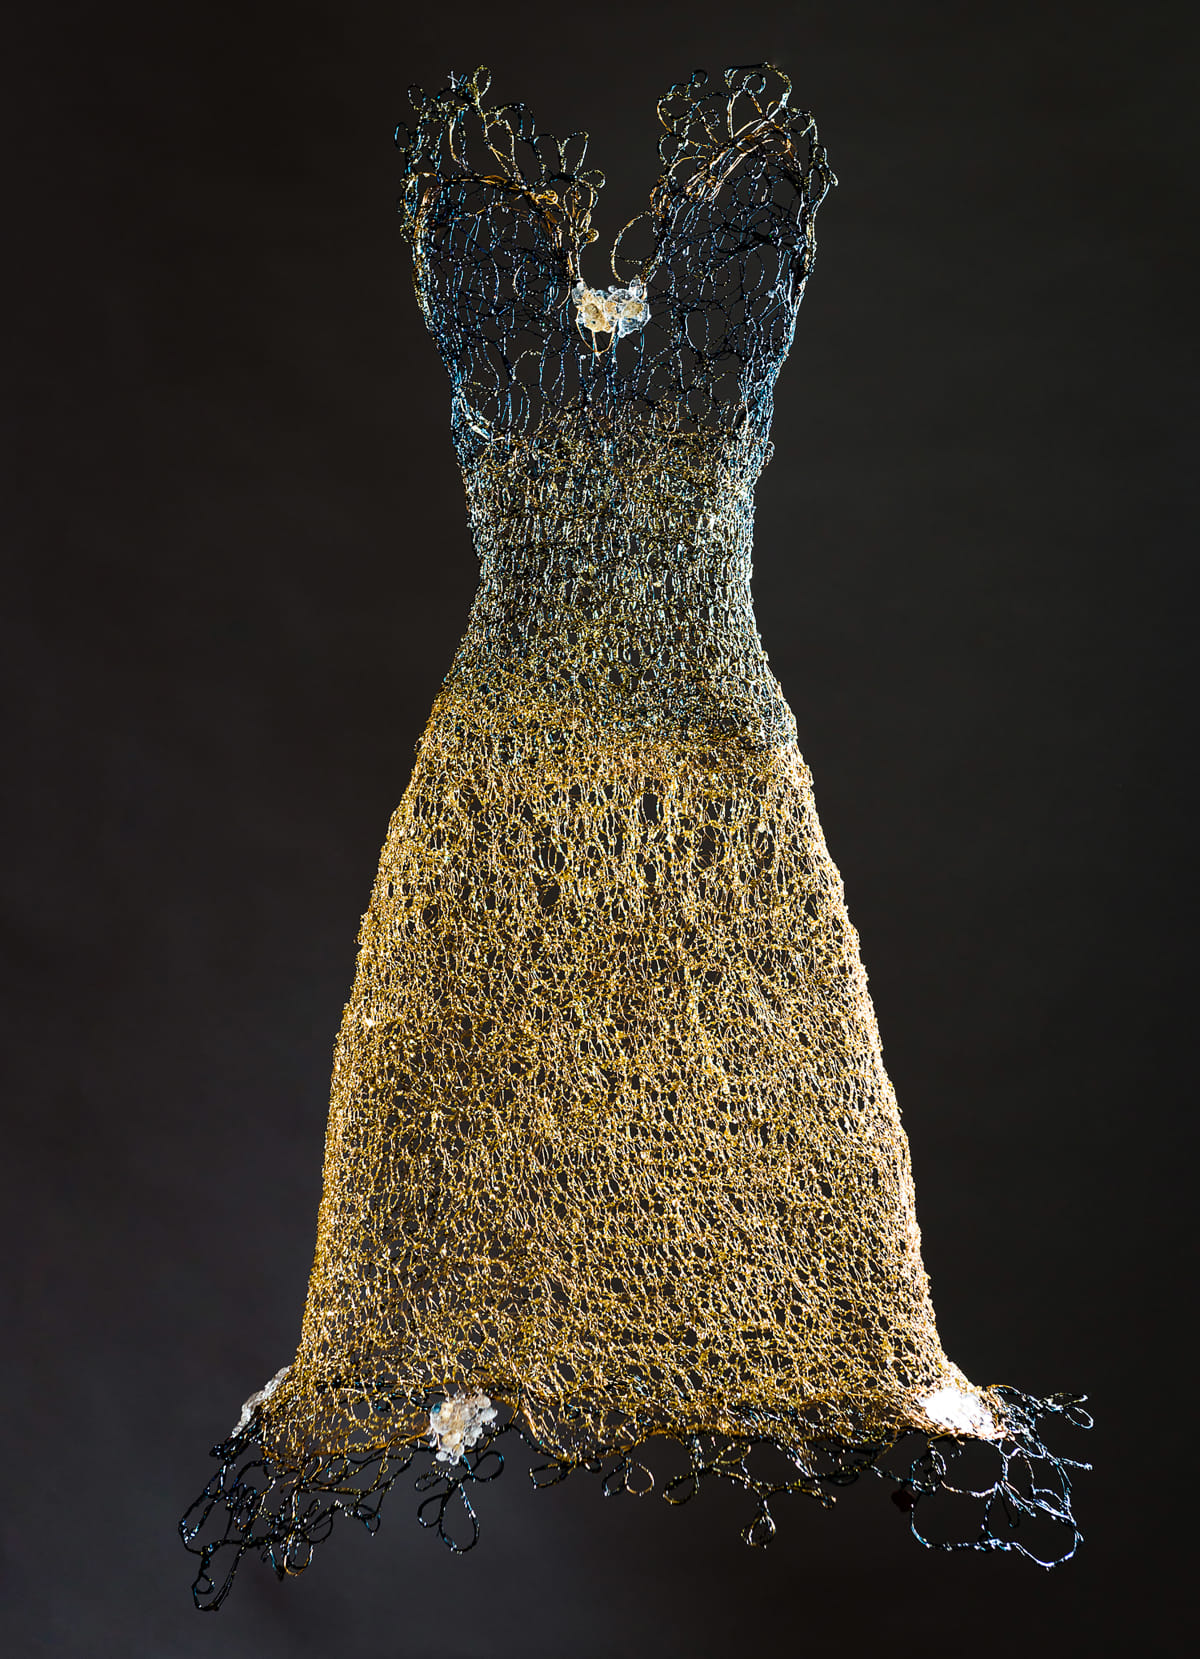 Susan Freda Azul Auro Woven Brass and Blue Copper Wire Dress with Cast Glass, Gold Leaf, Resin and Blue & Gold Metal 21 x 34 unframed